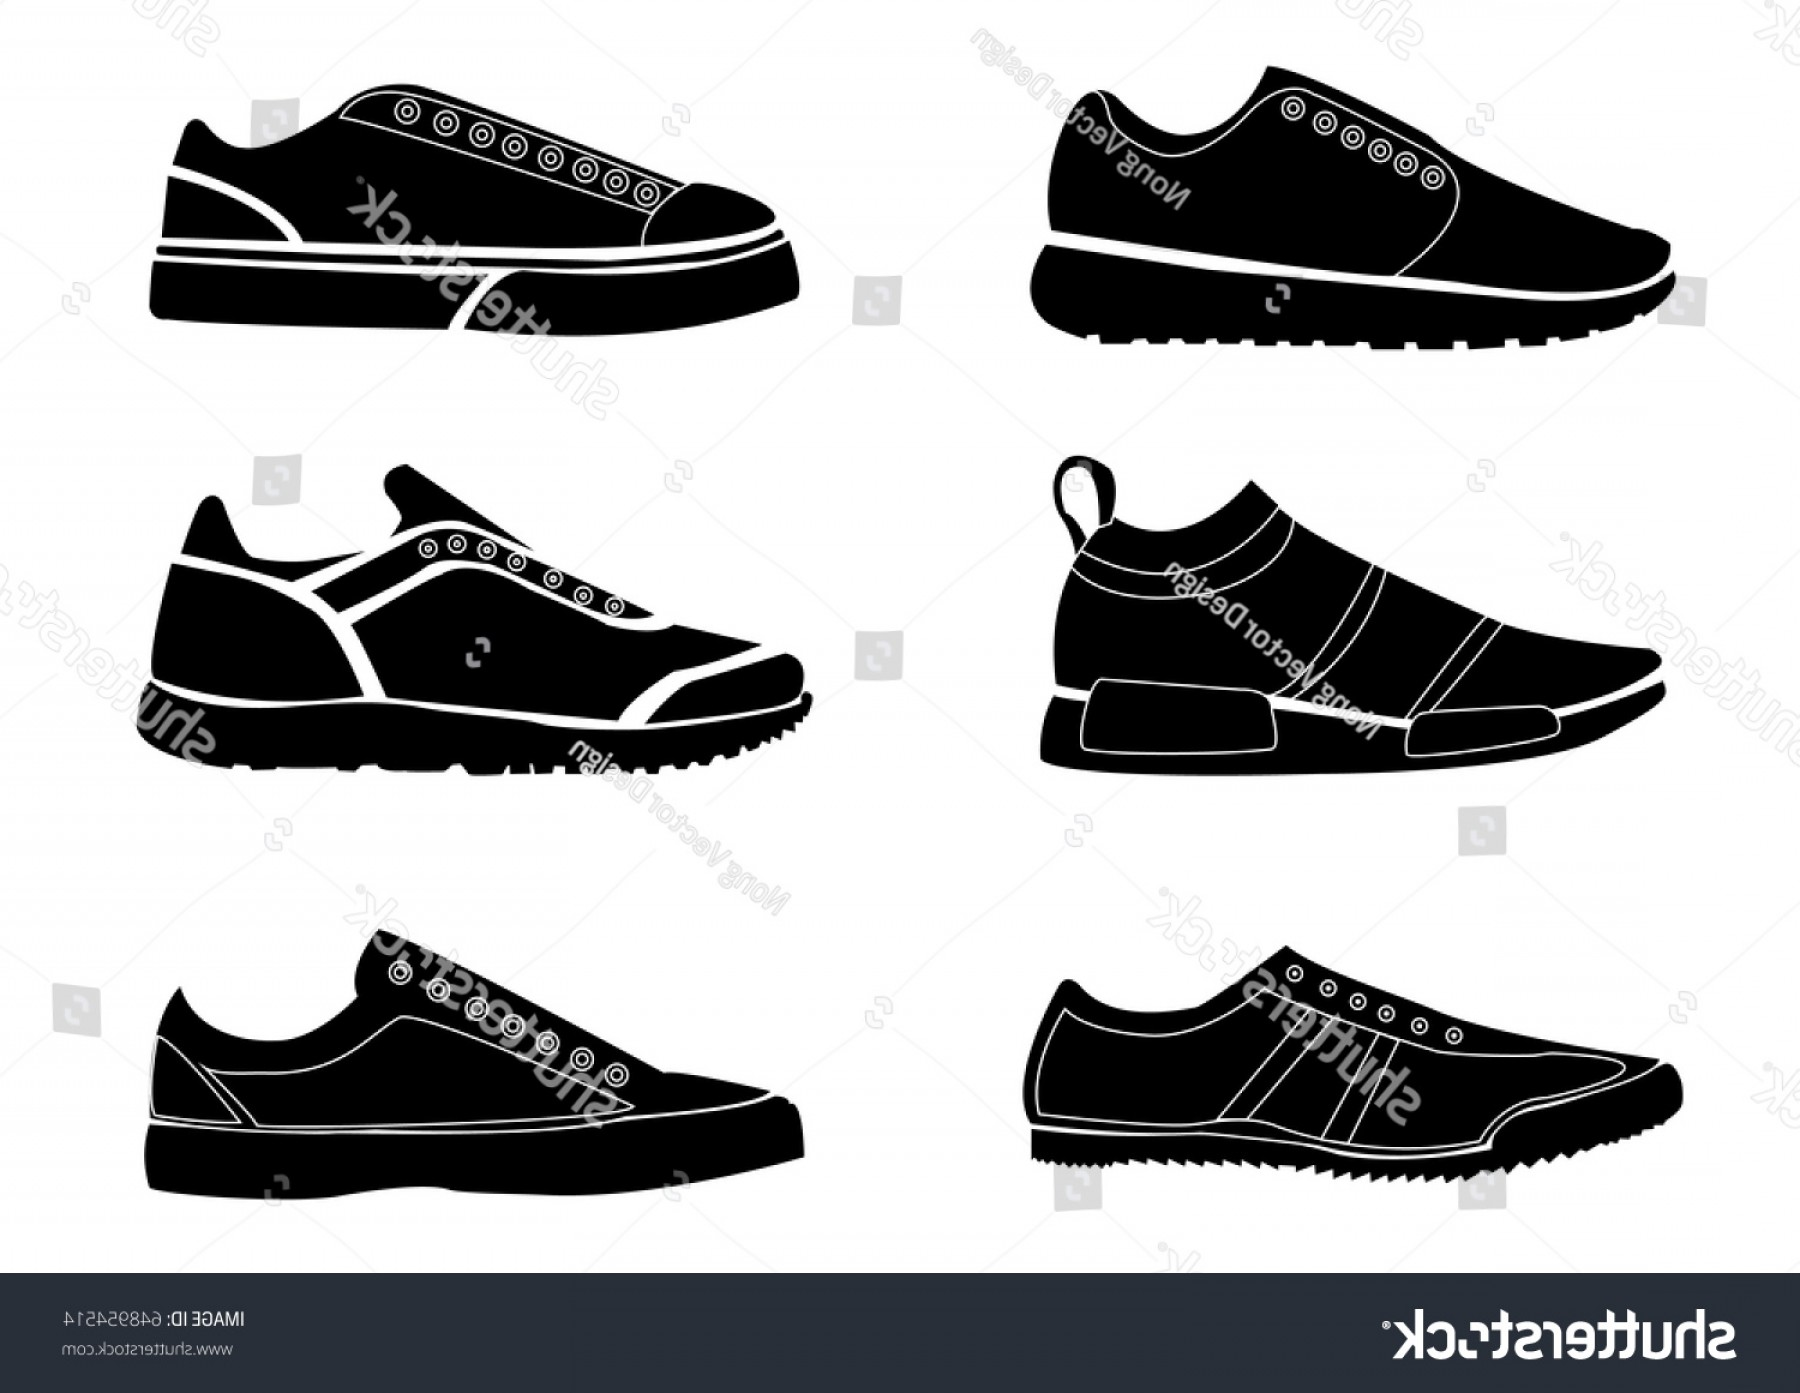 Sneaker Silhouette Vector: Silhouette Symbol Shoes Set Sports Shoe